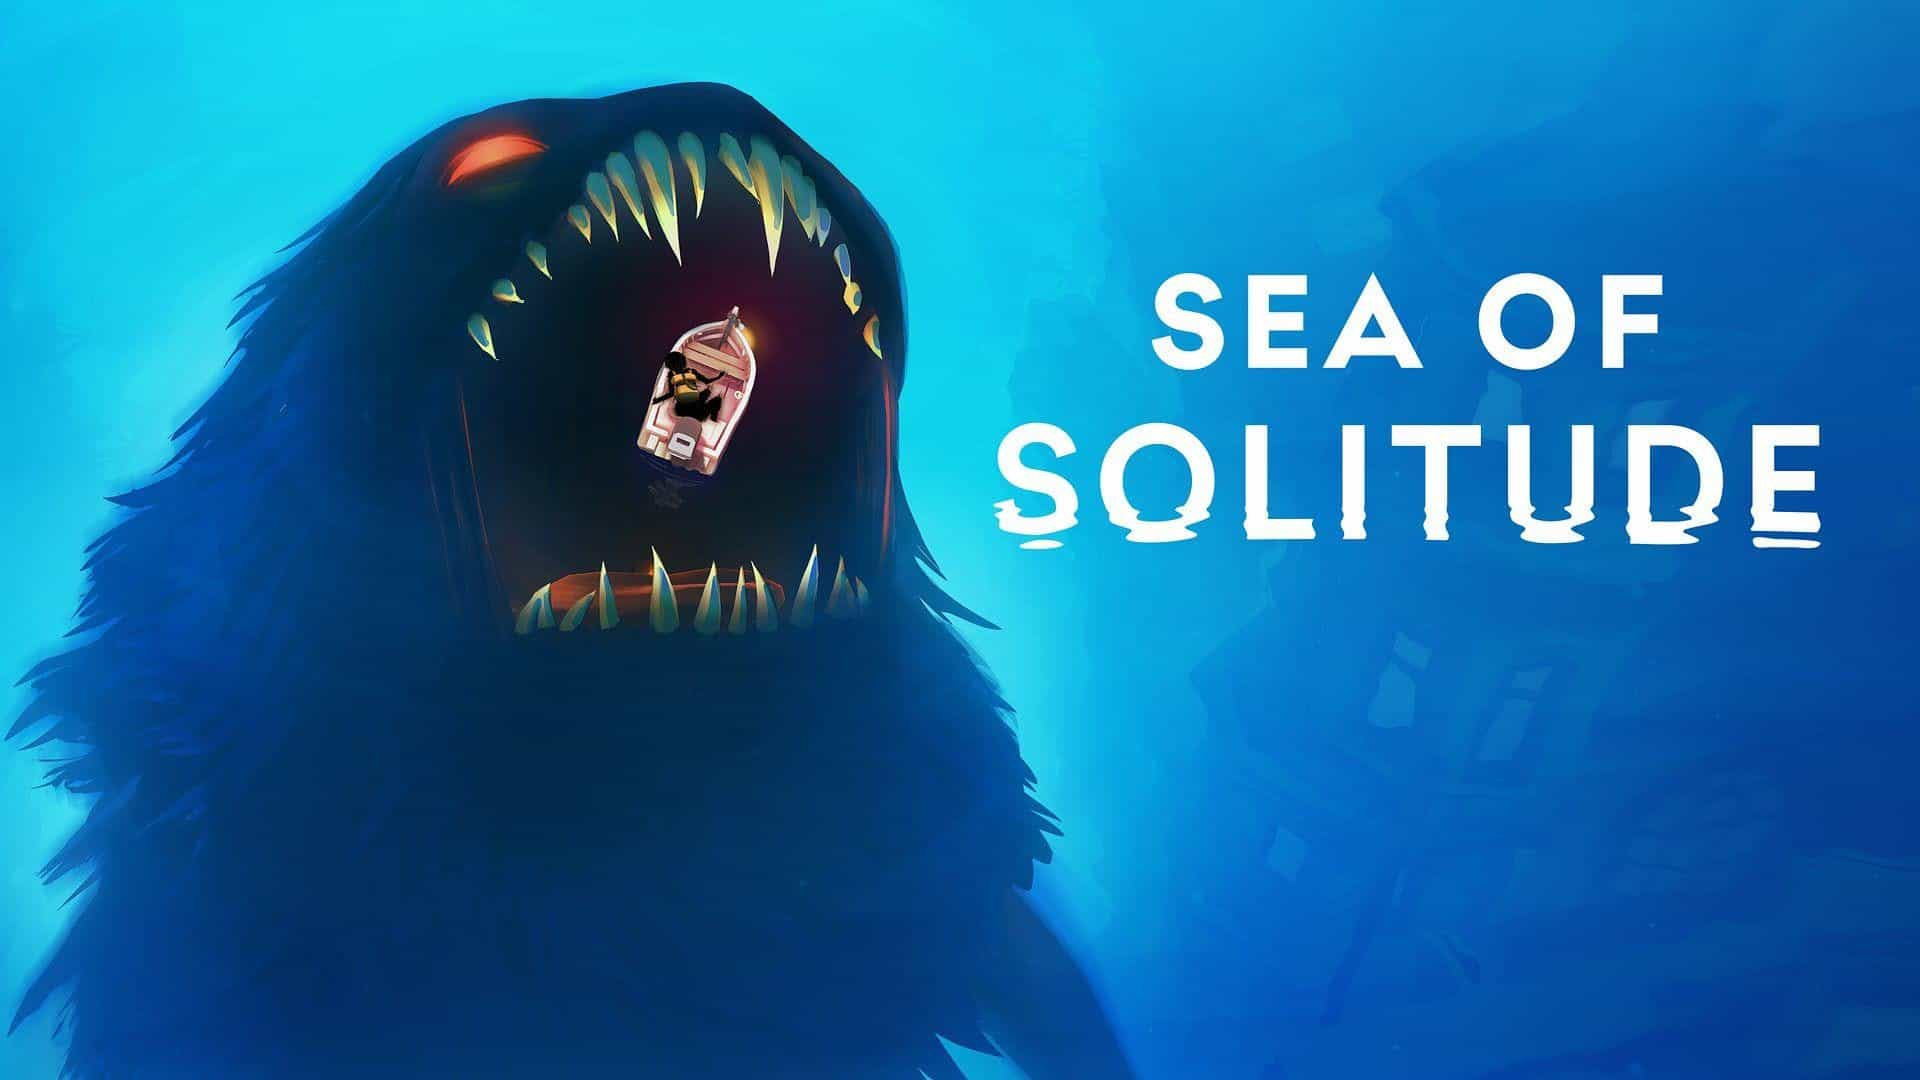 Embark On An Emotional Journey In Sea Of Solitude, Available Now On PS4, Xbox One And PC